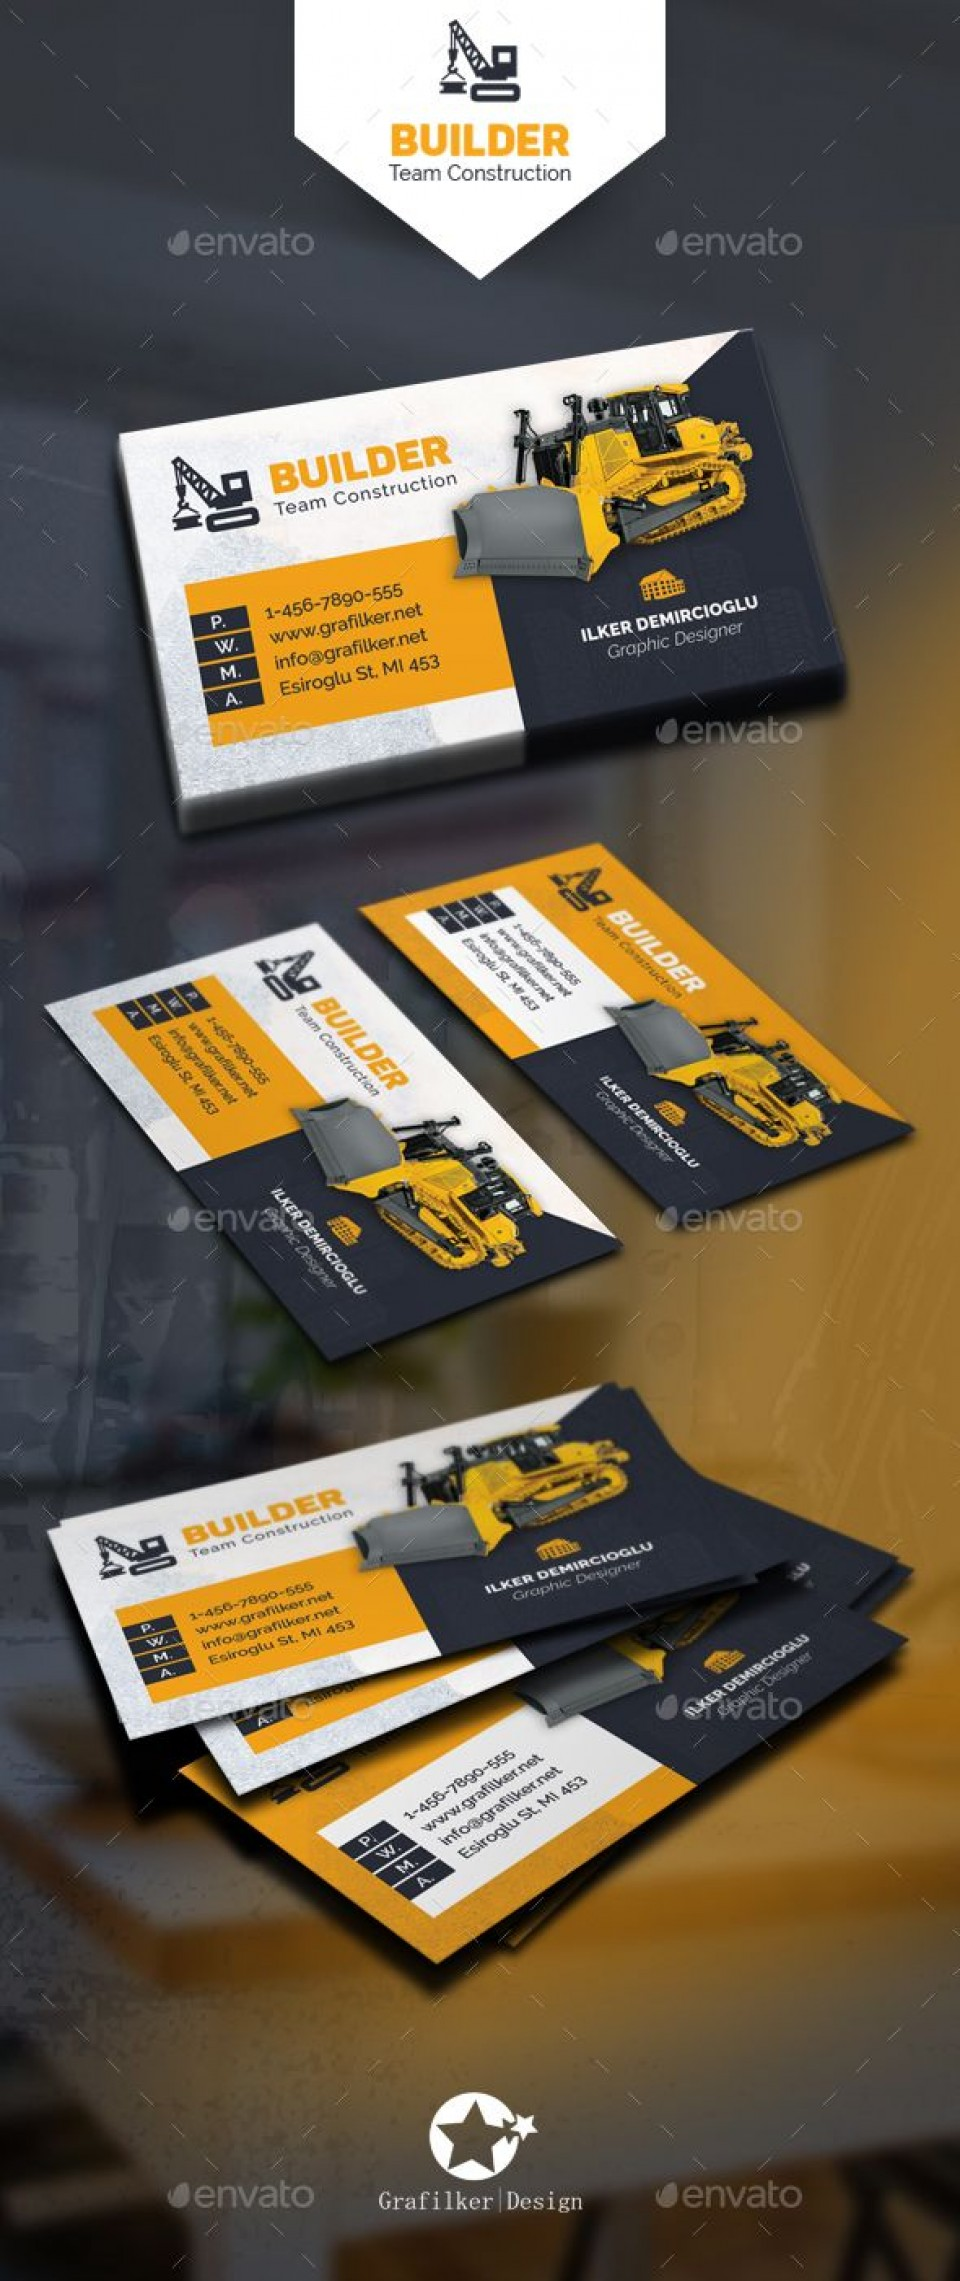 000 Magnificent Construction Busines Card Template Picture  Company Visiting Format Word For Material960